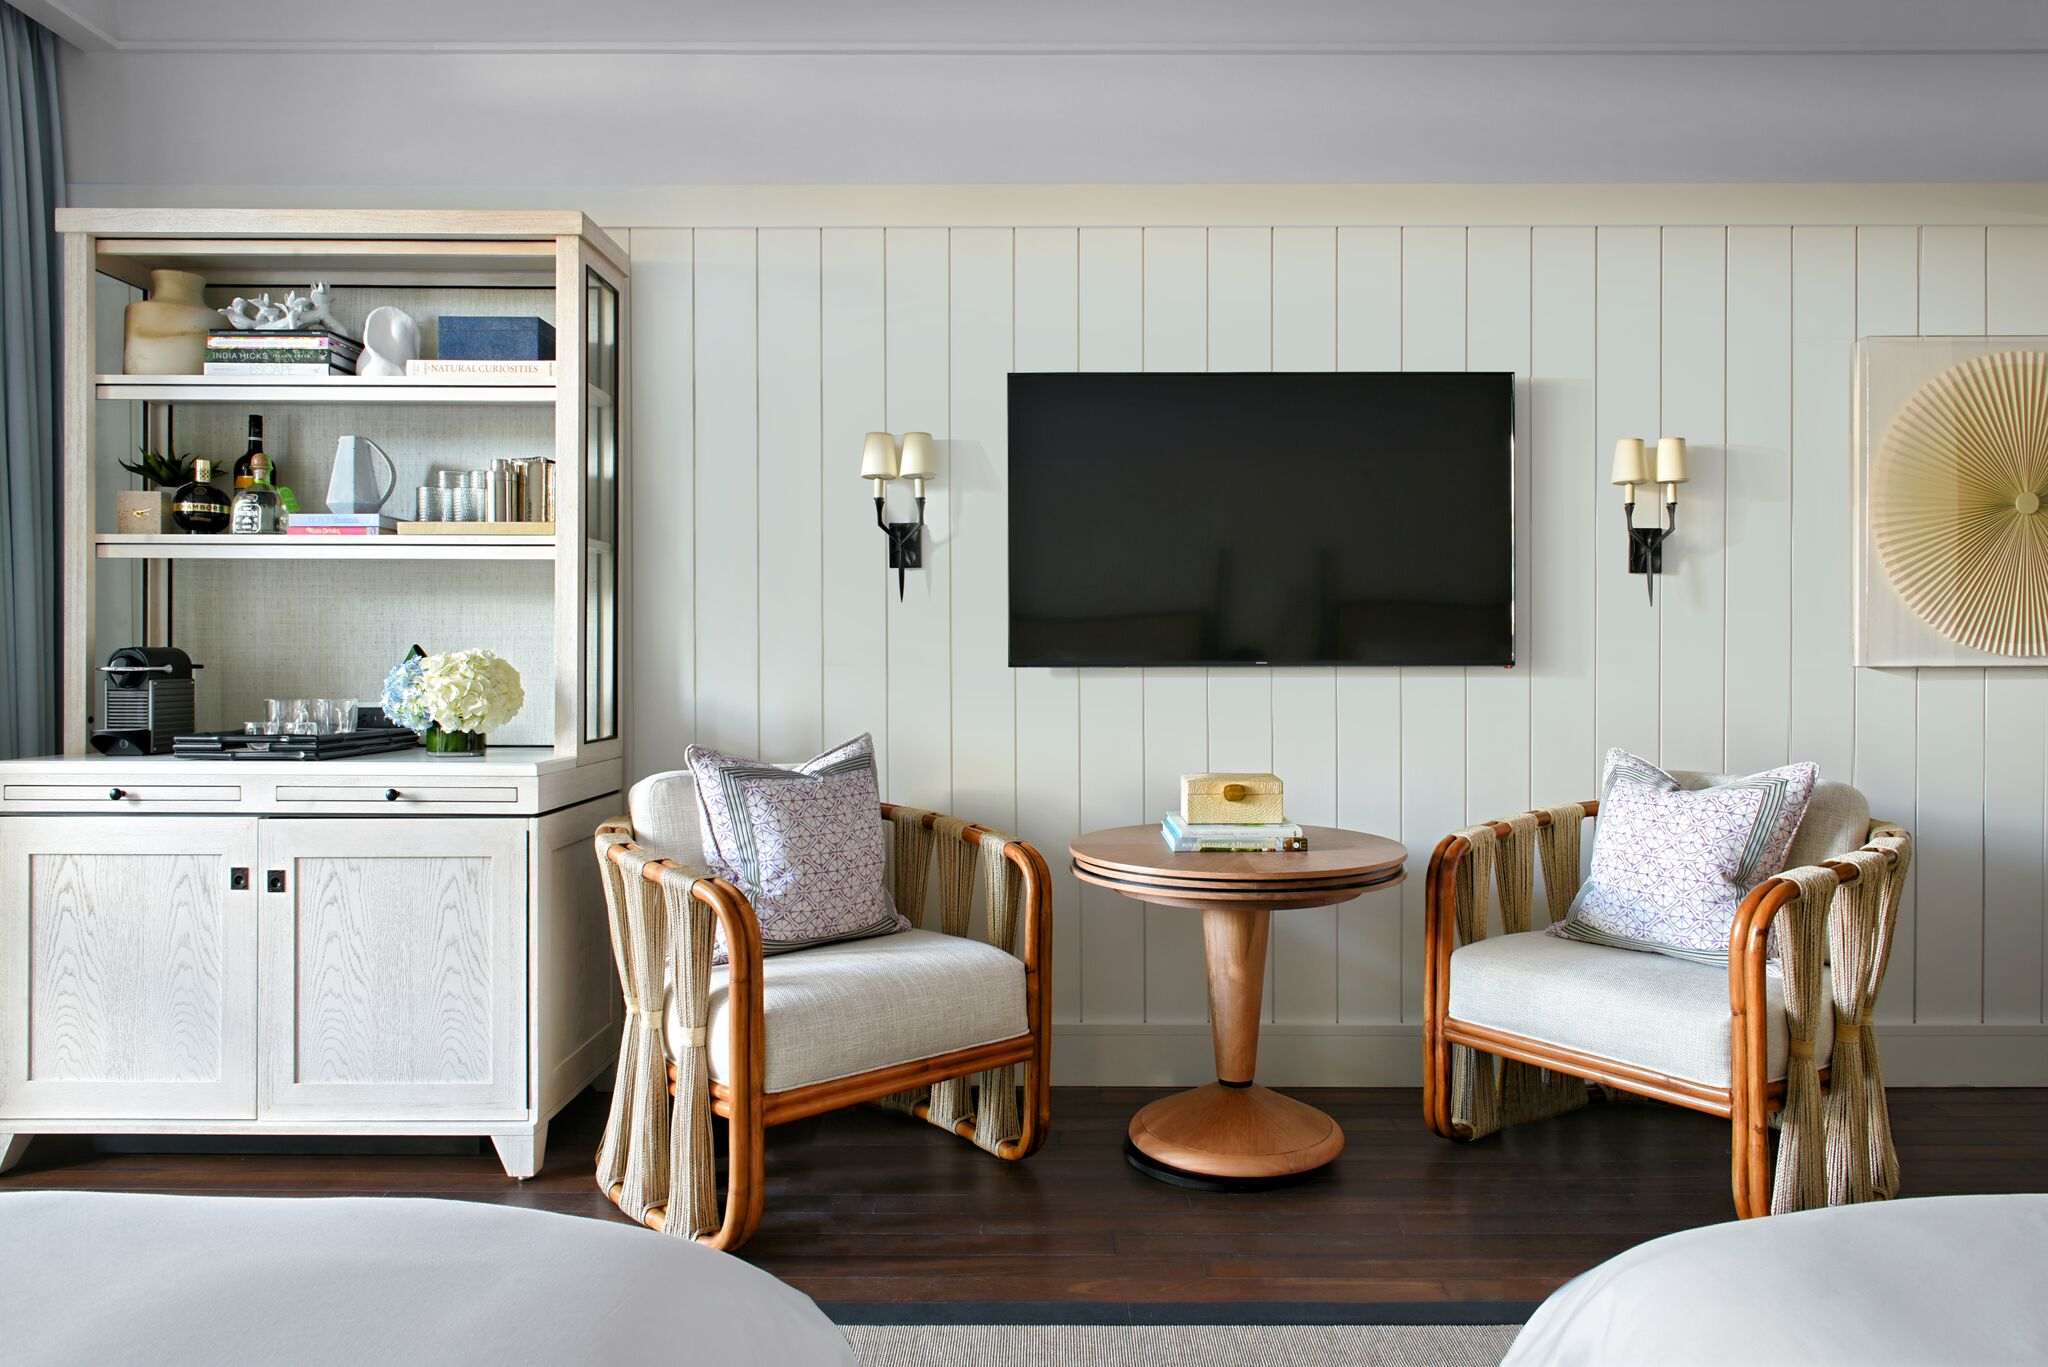 Queen Room_Sitting Area_preview.jpg